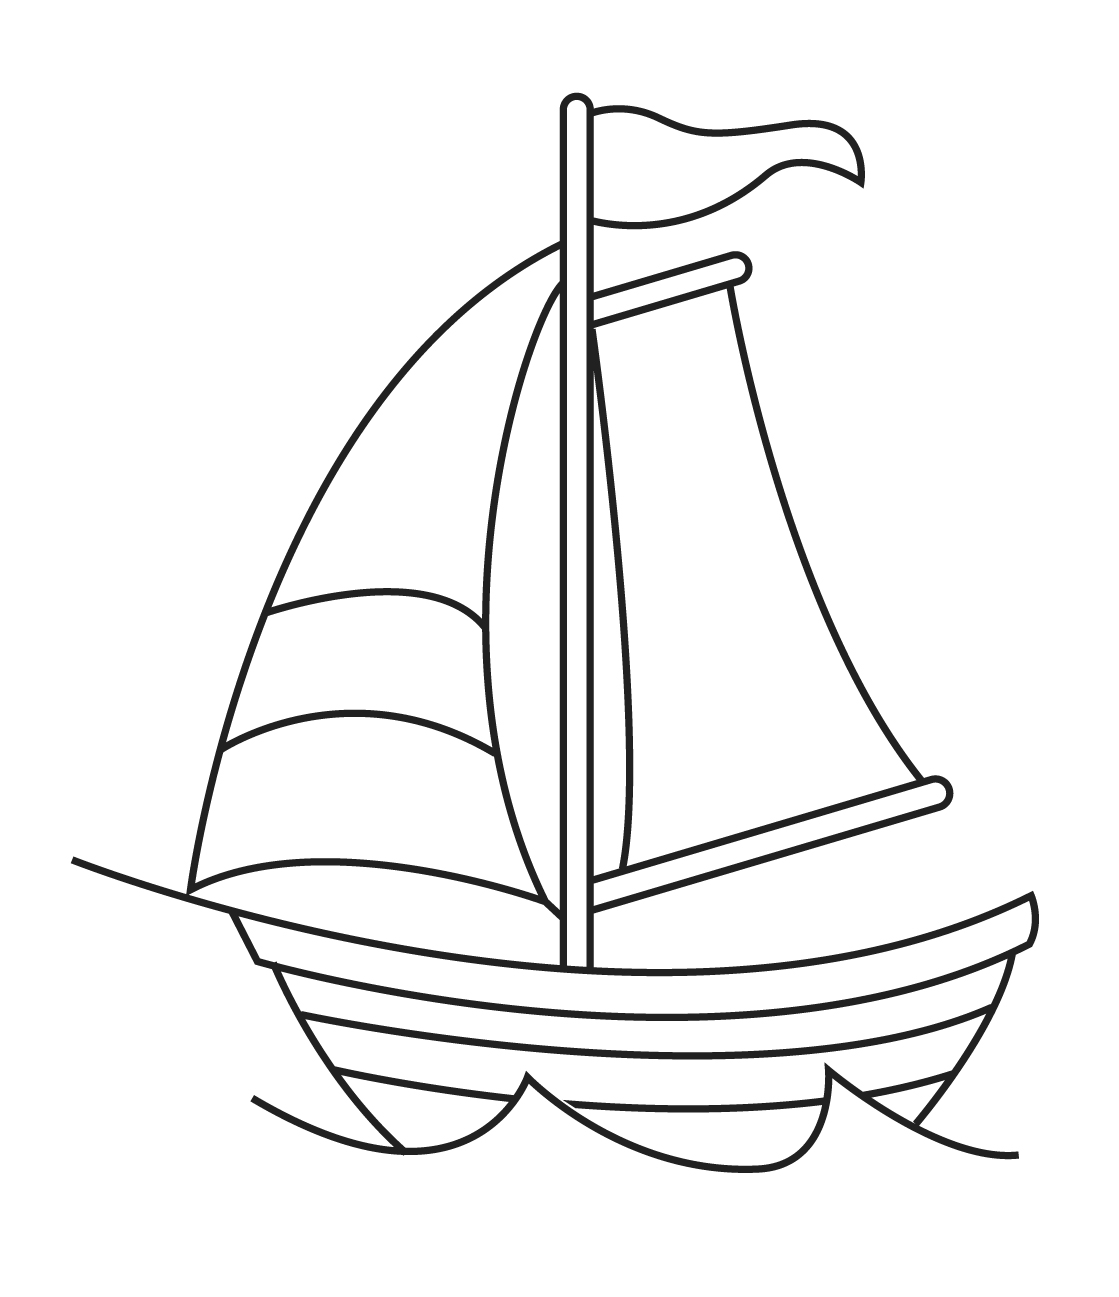 Free Simple Ship Drawing Download Free Clip Art Free